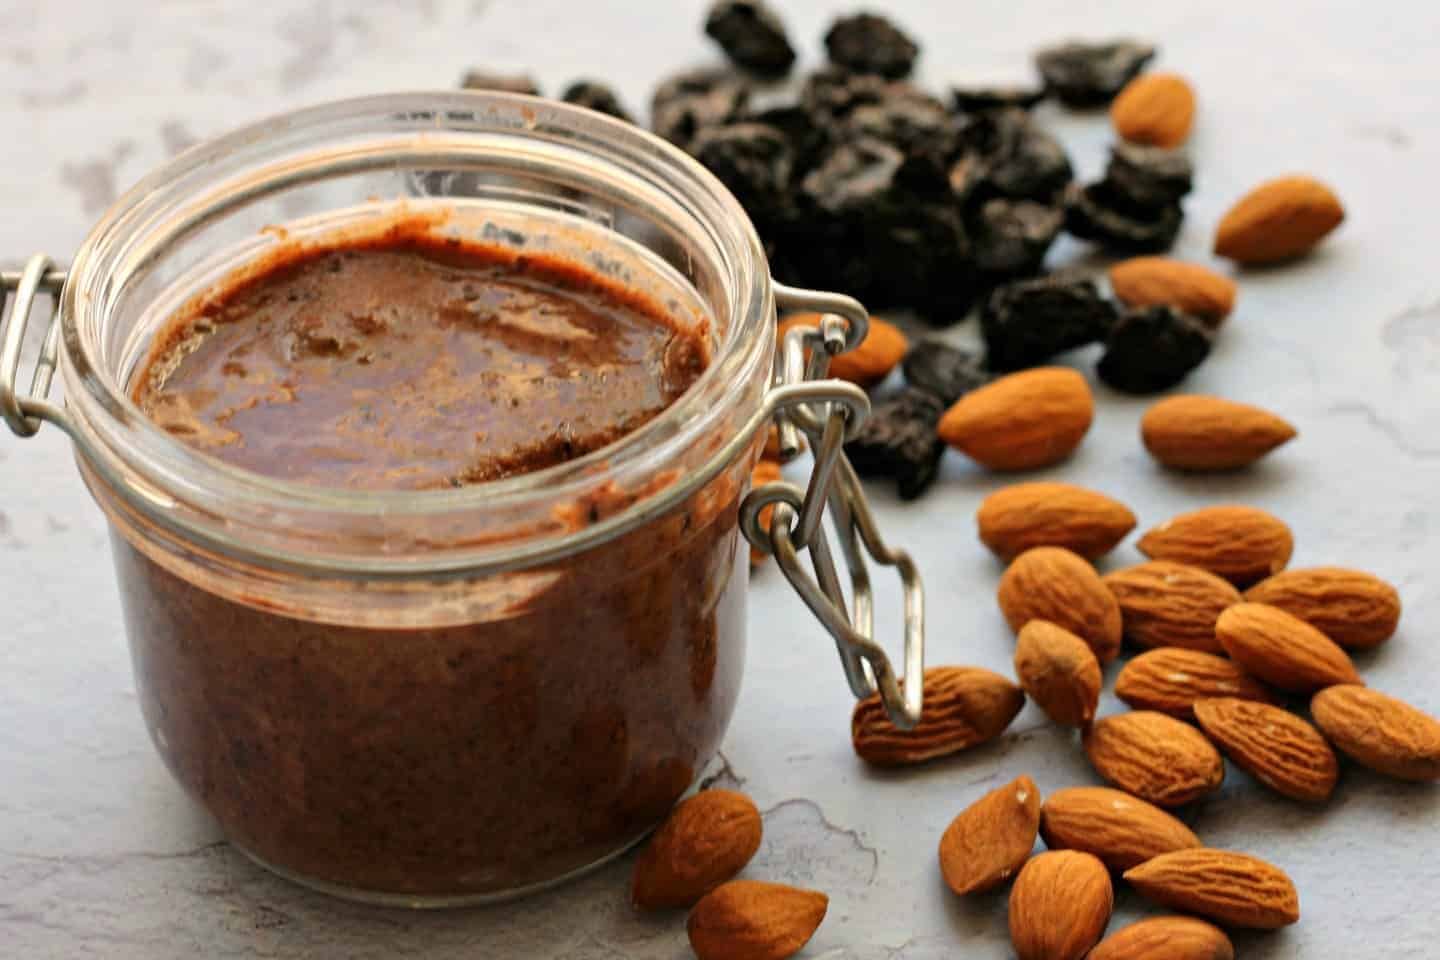 A pot of almond butter on a grey background with almonds and cherries around it.